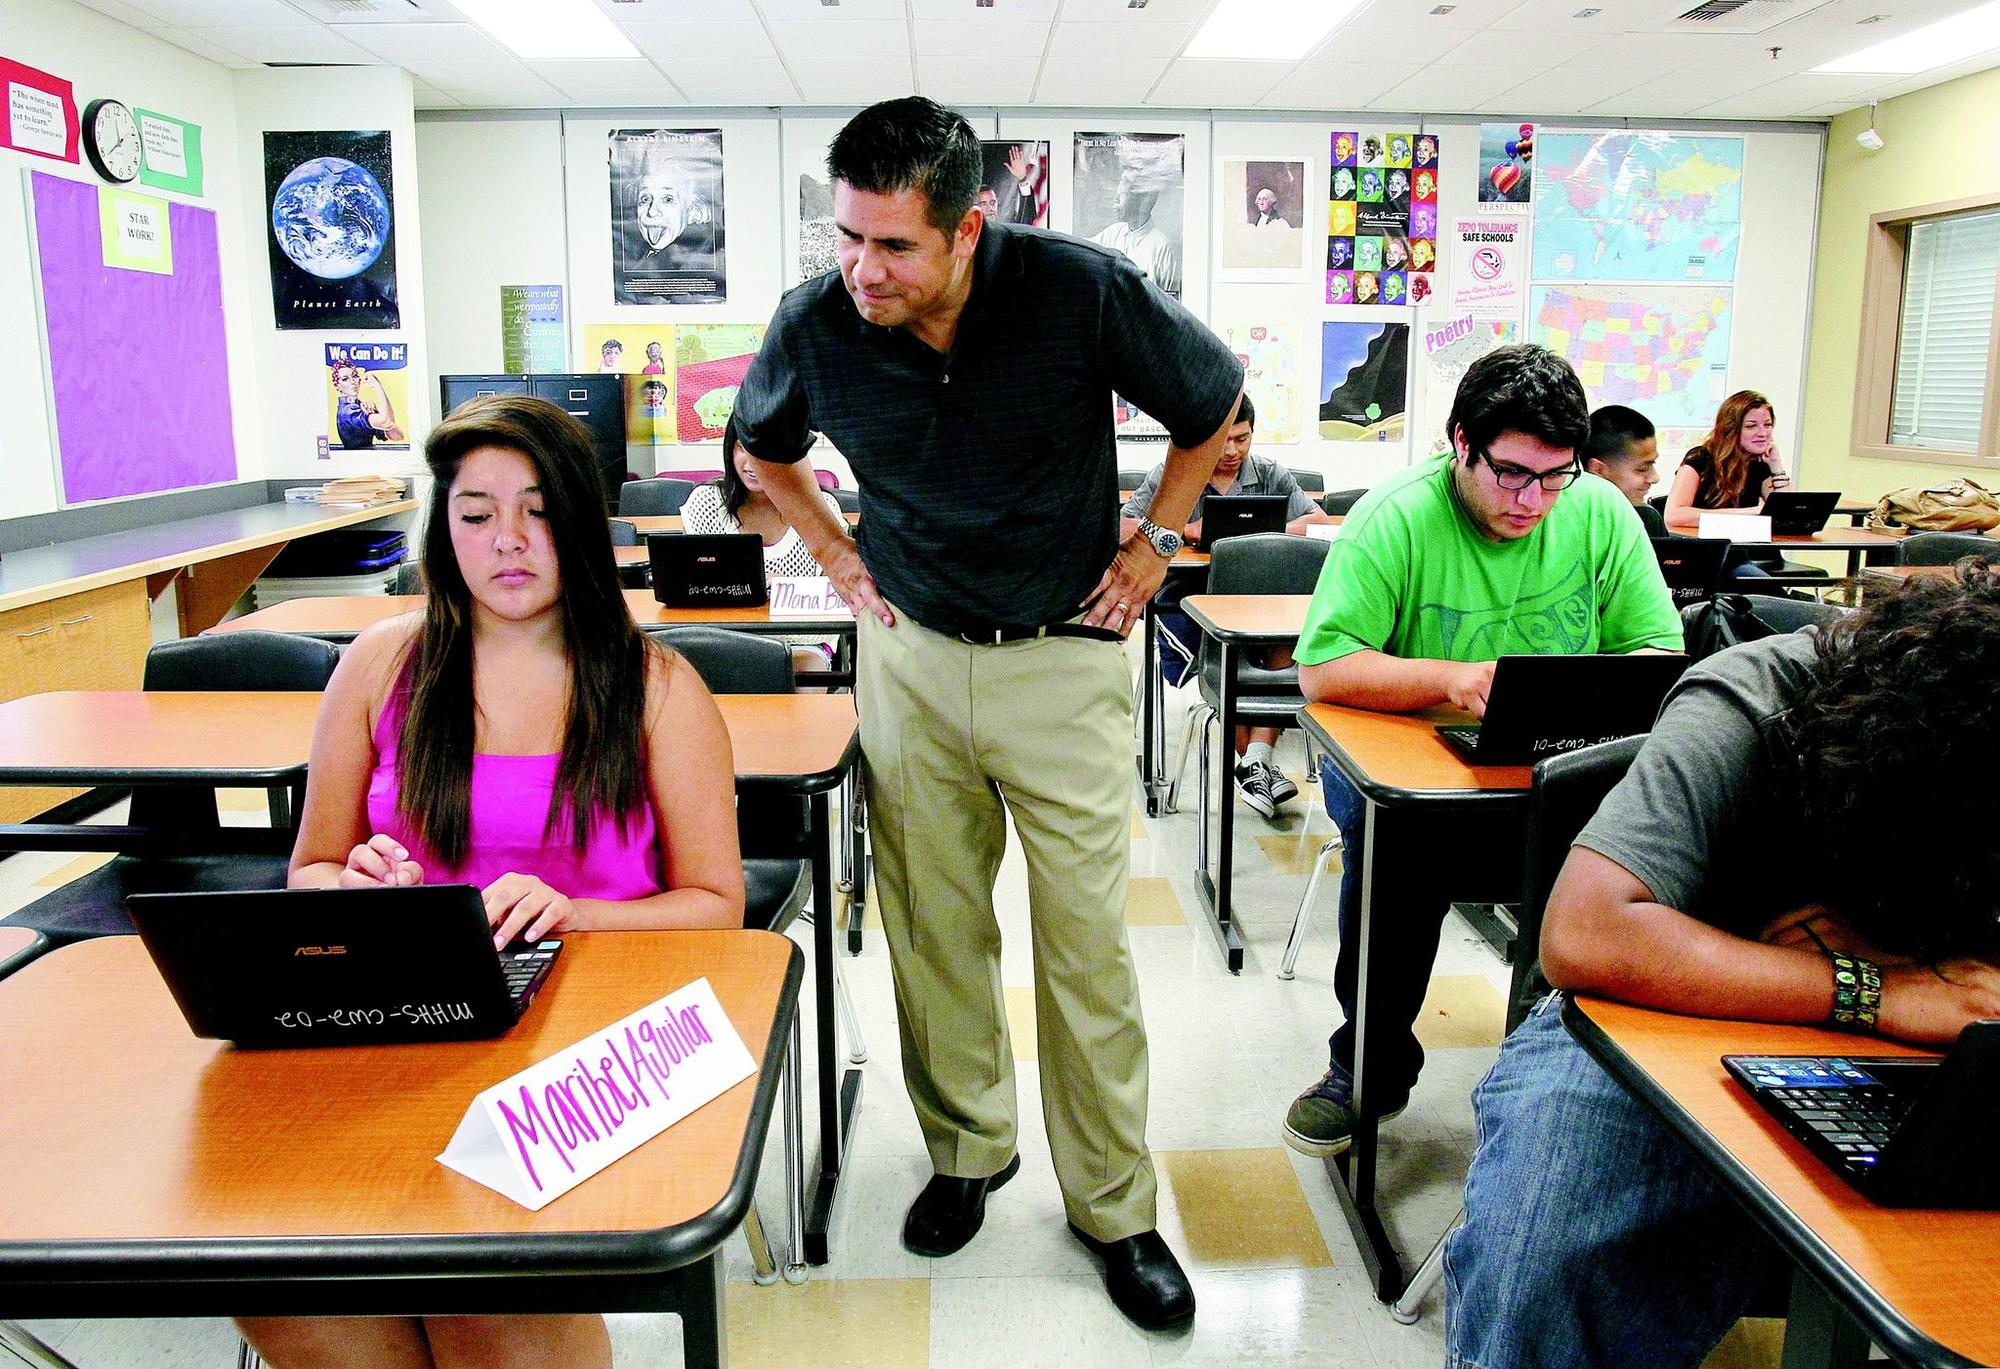 Teacher Paul Zendajas looks over the shoulder of student Maribel Aguilar on Wednesday in a California High School Exit Exam prep class at Mission Hills High School in San Marcos.